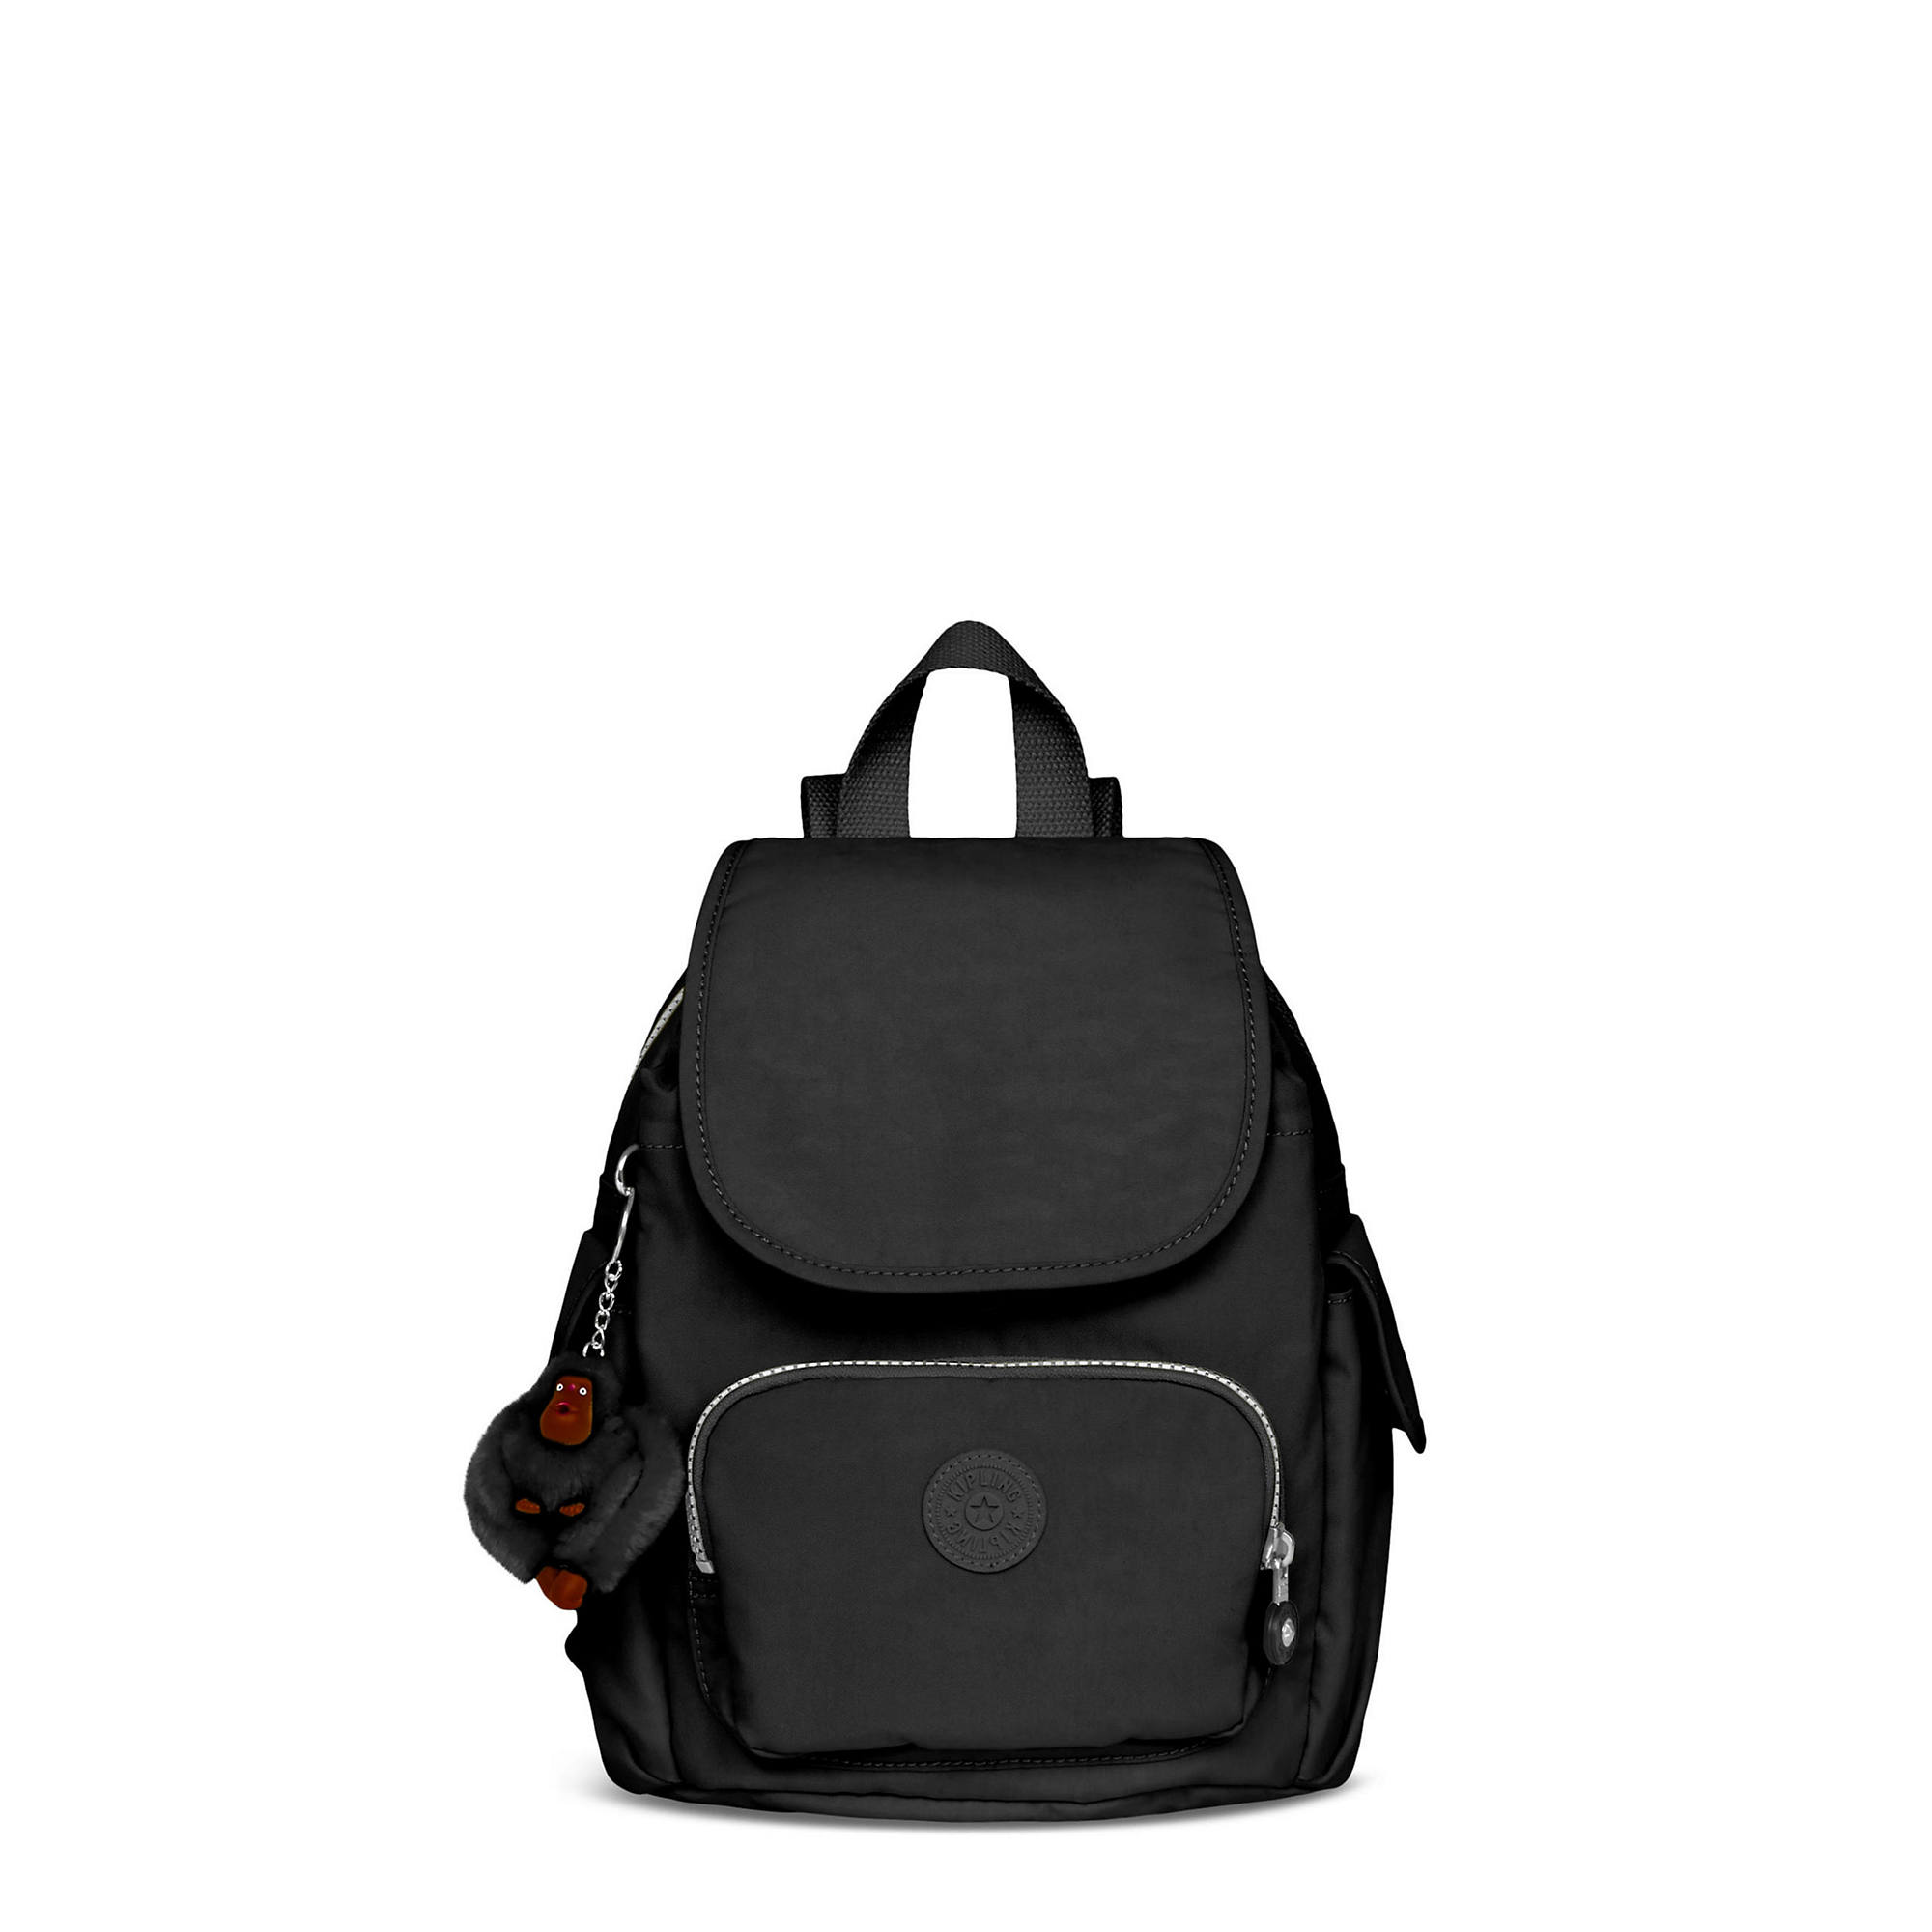 4f7c3edf578f City Pack Extra Small Backpack - Black Classic